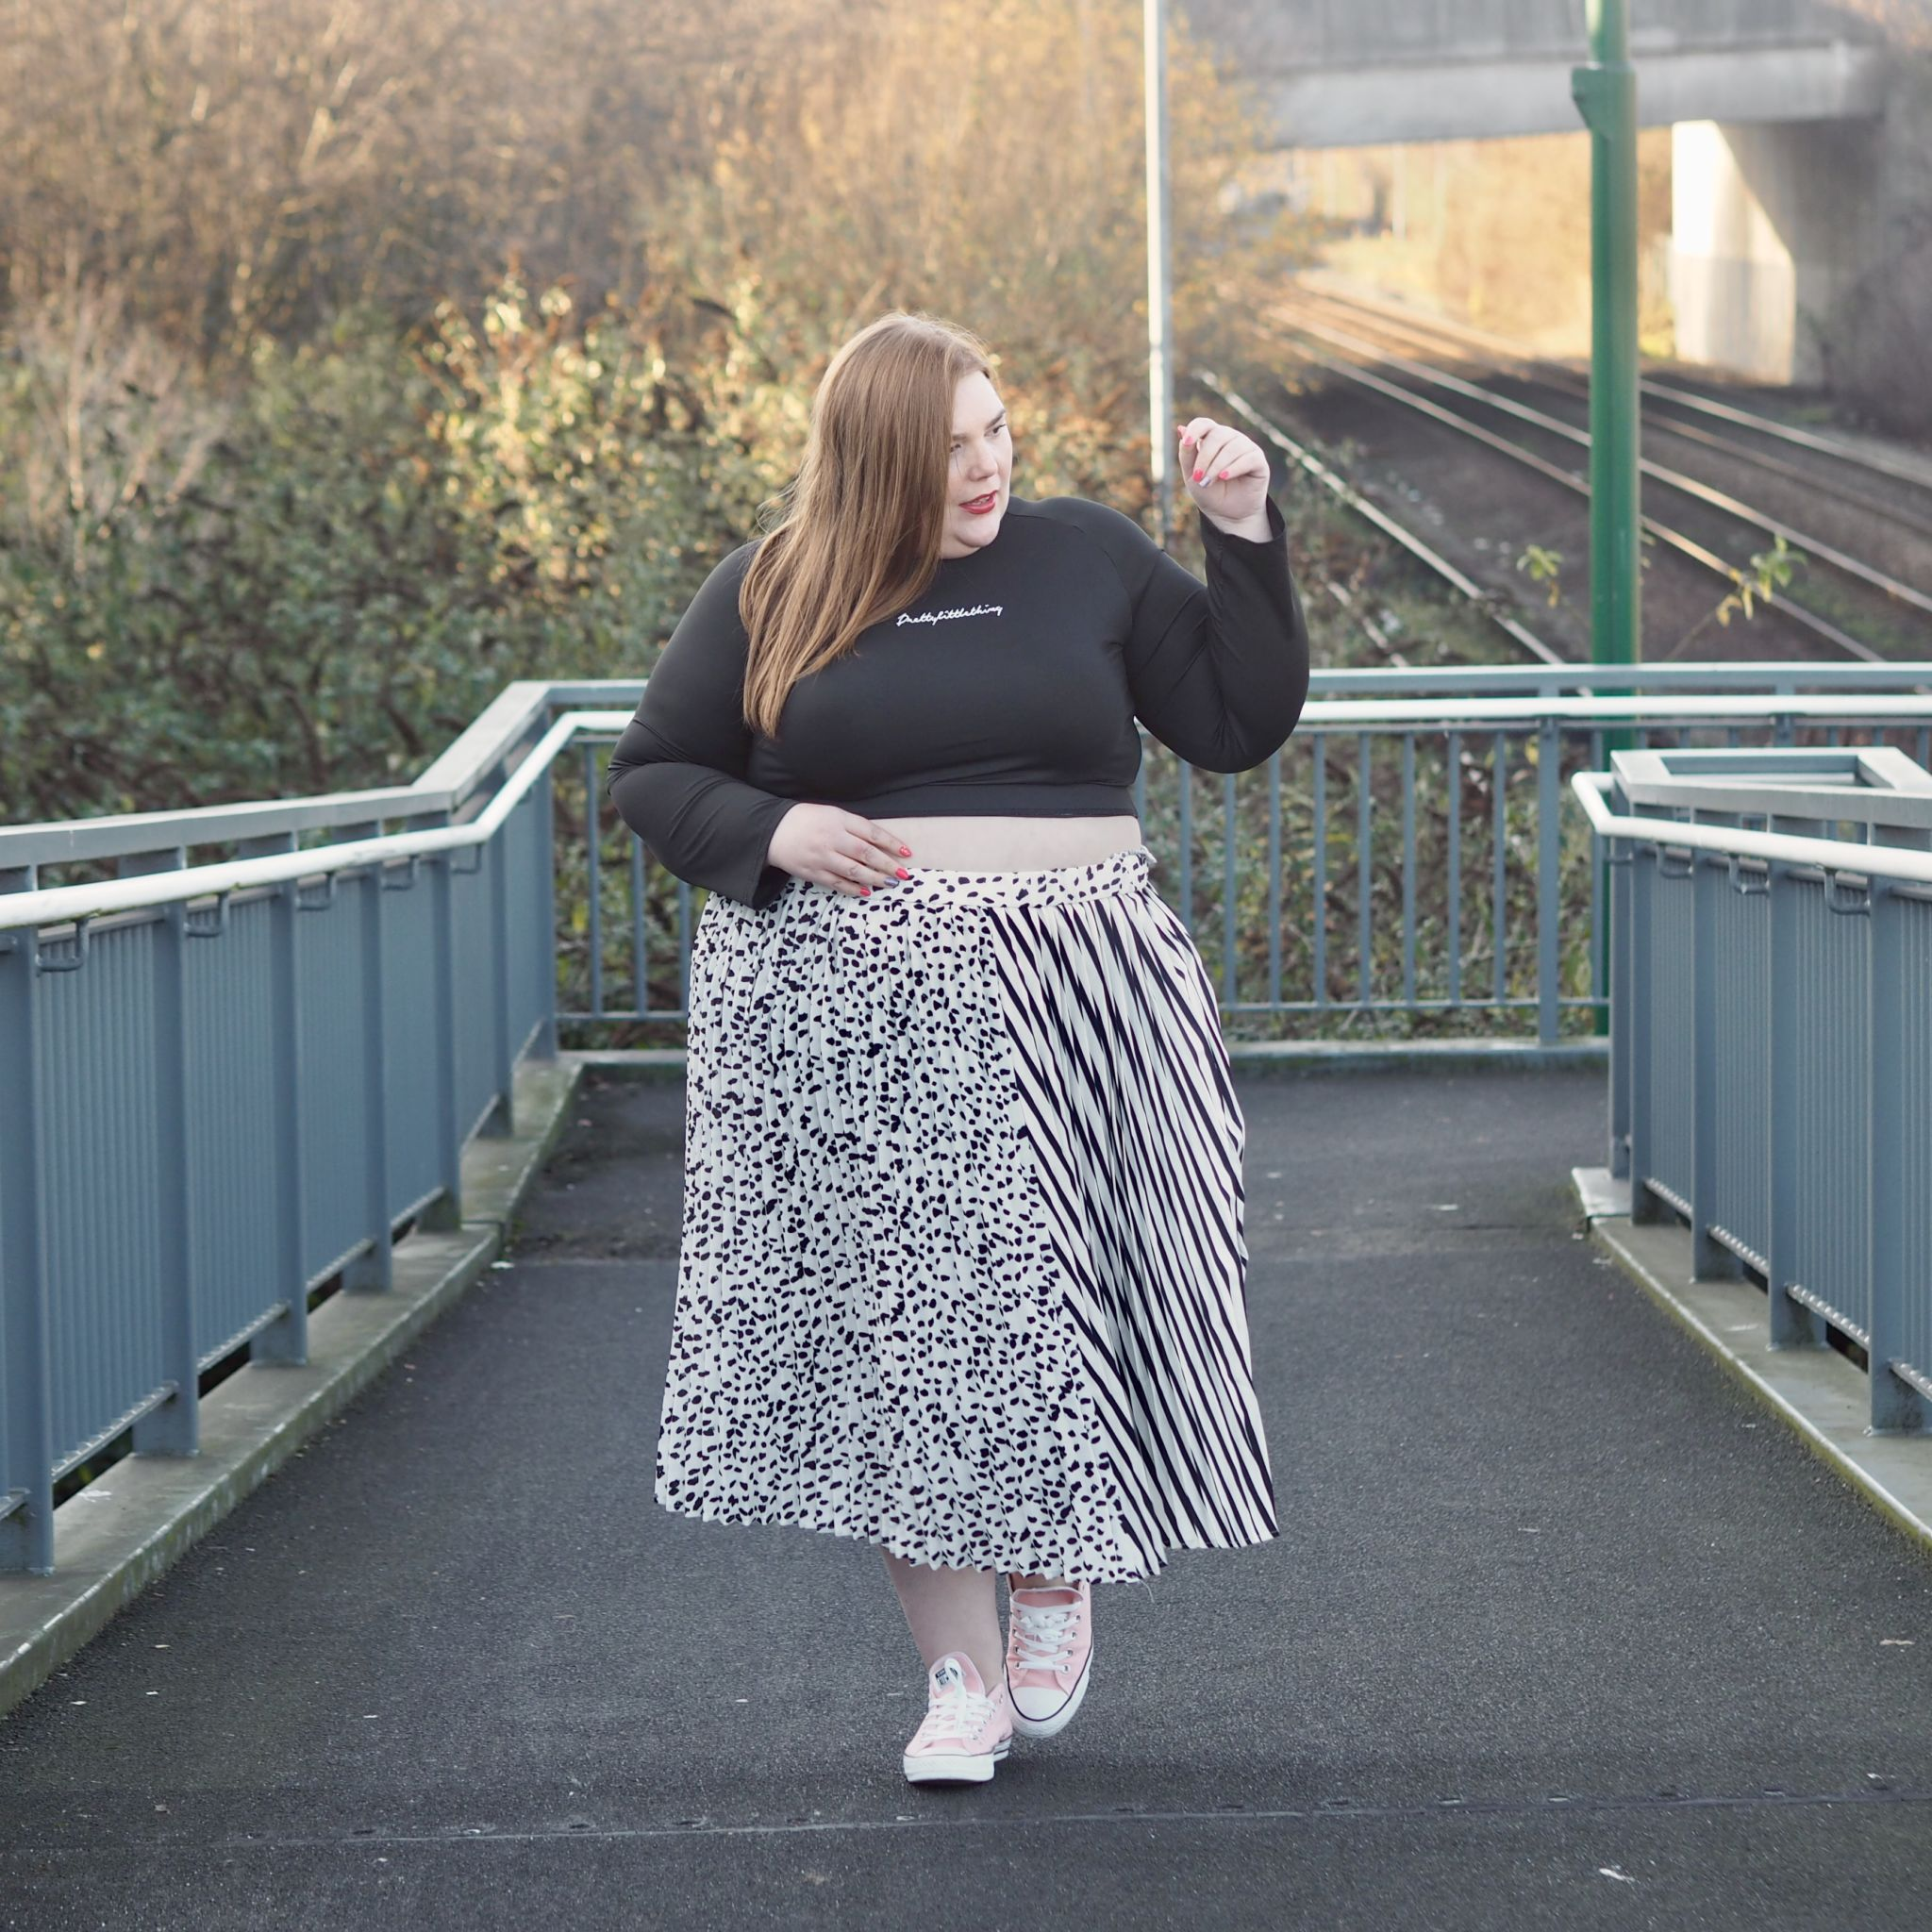 Plus size model wearing black crop top and a floaty black and white mixed print skirt and pink converse trainers